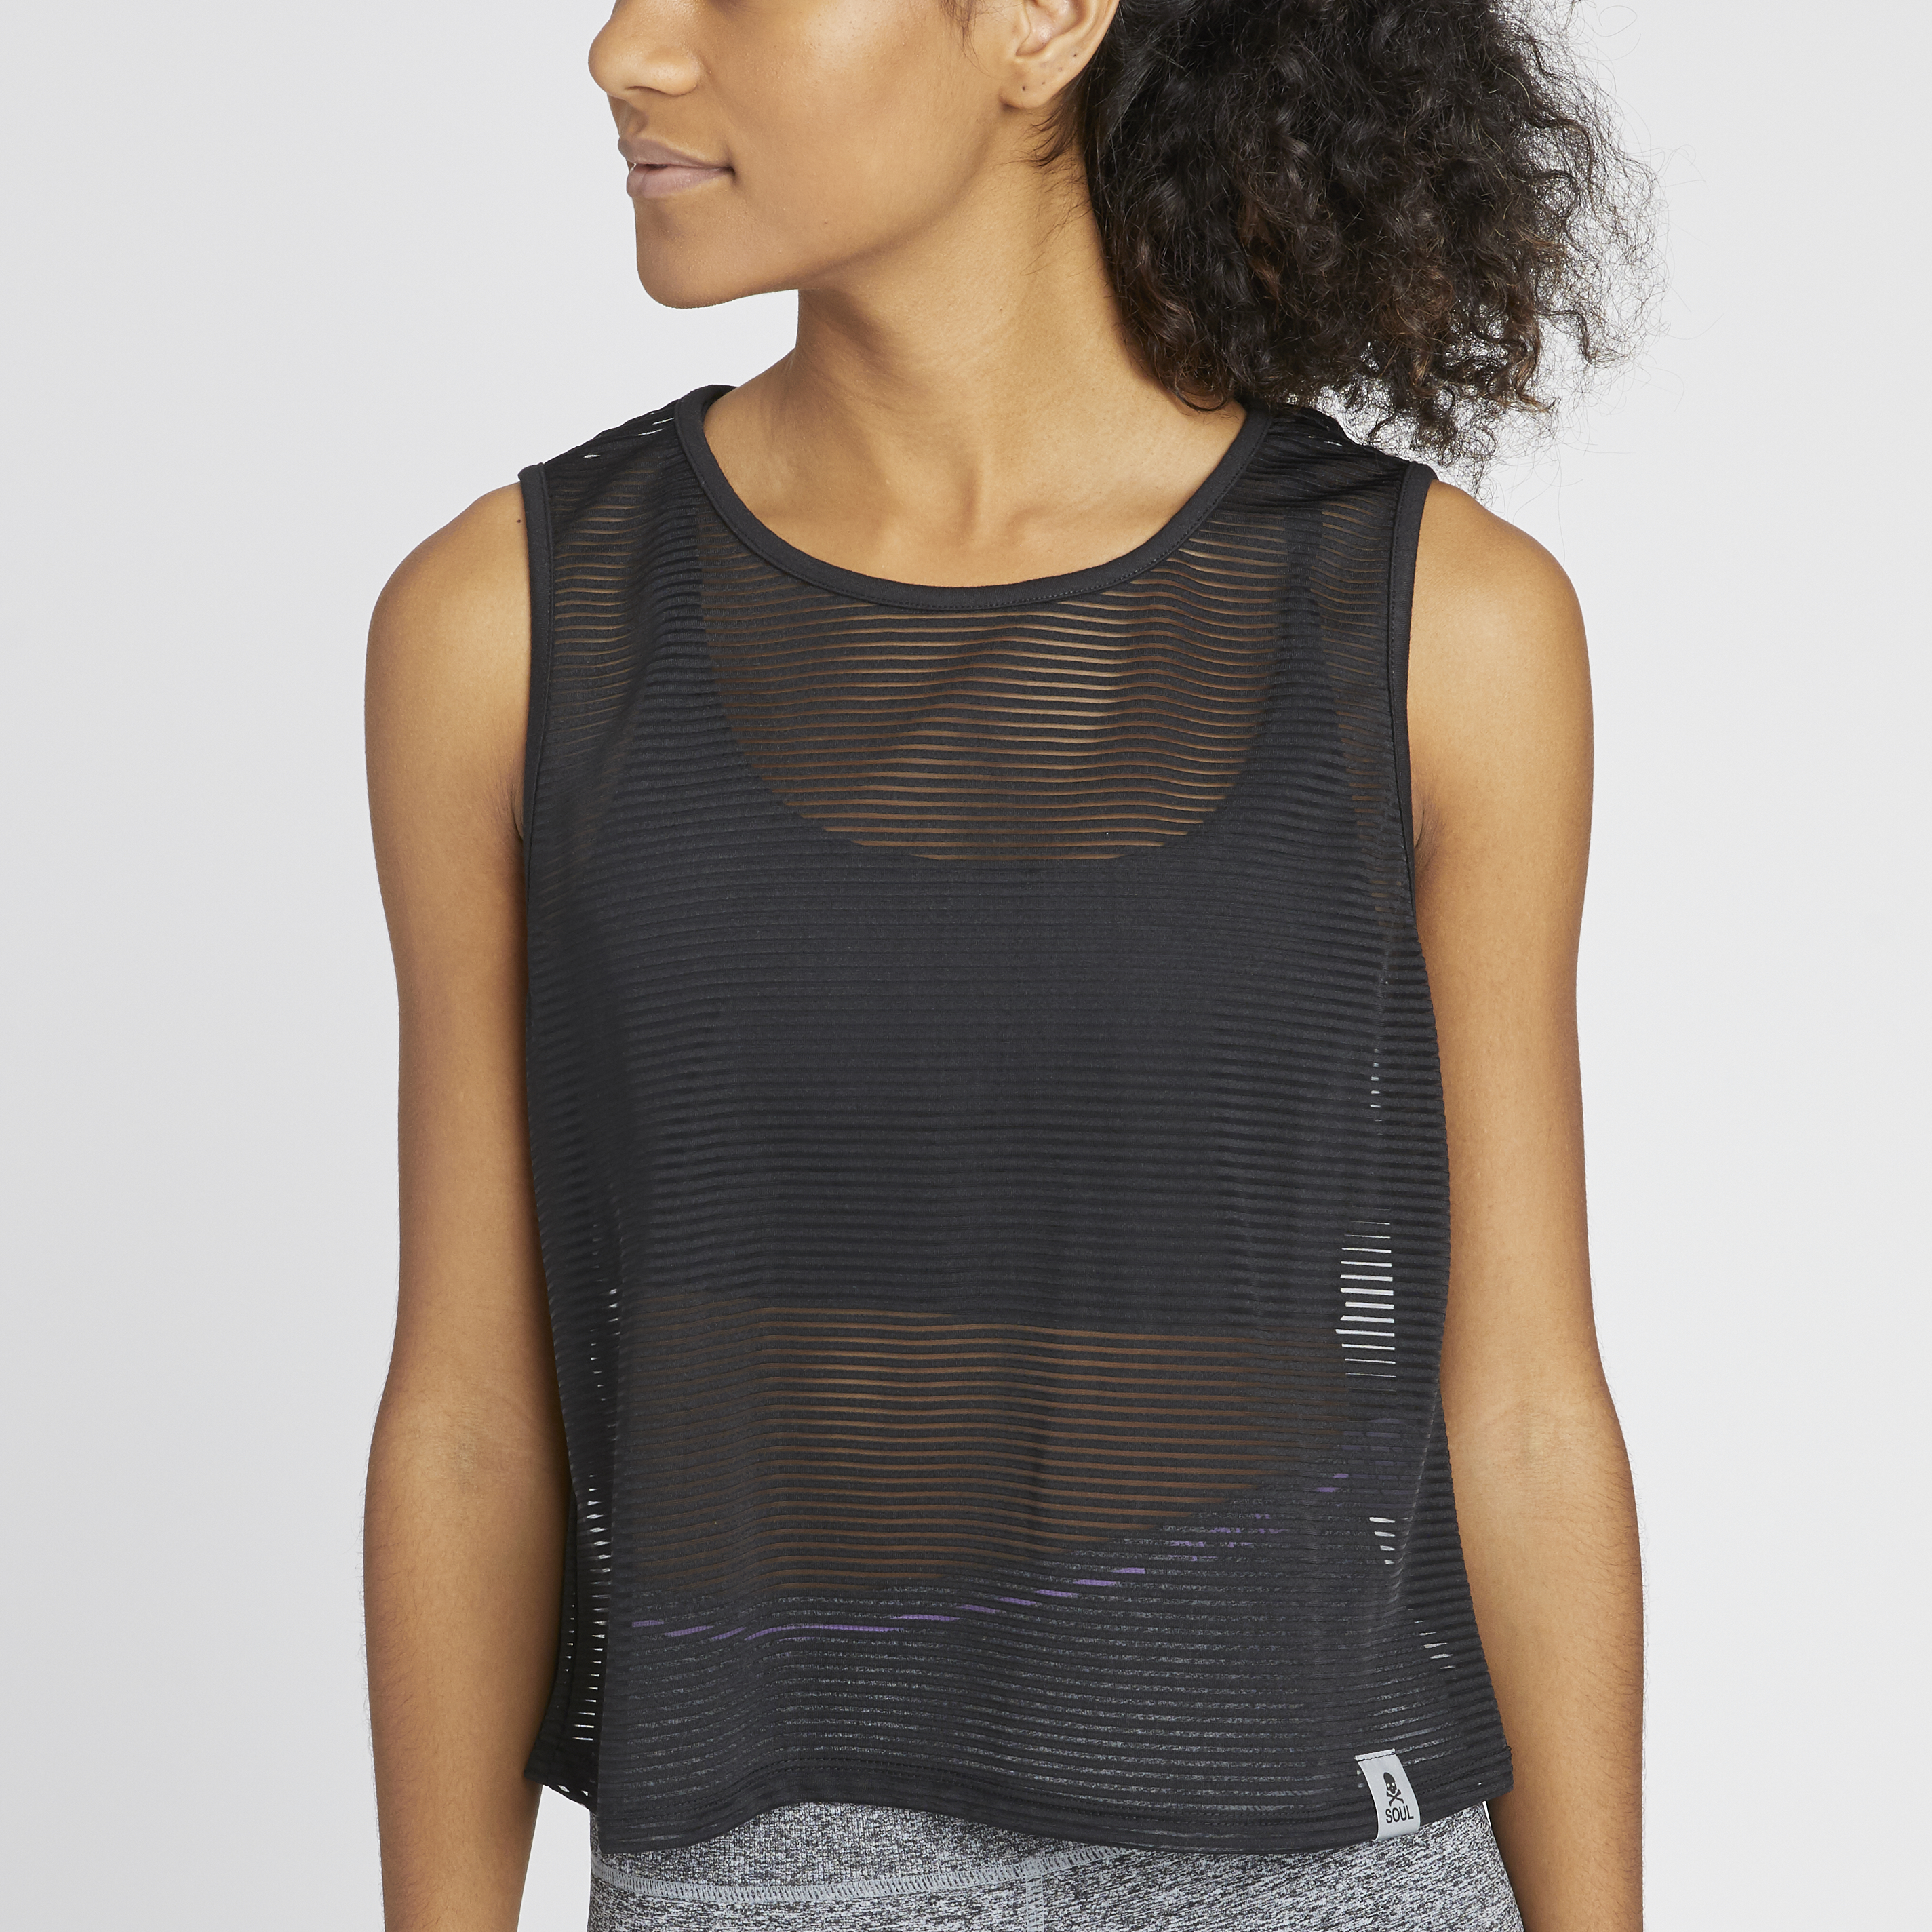 Soul by SoulCycle Sheer Stripe Crop Tank - SoulCycle Shop